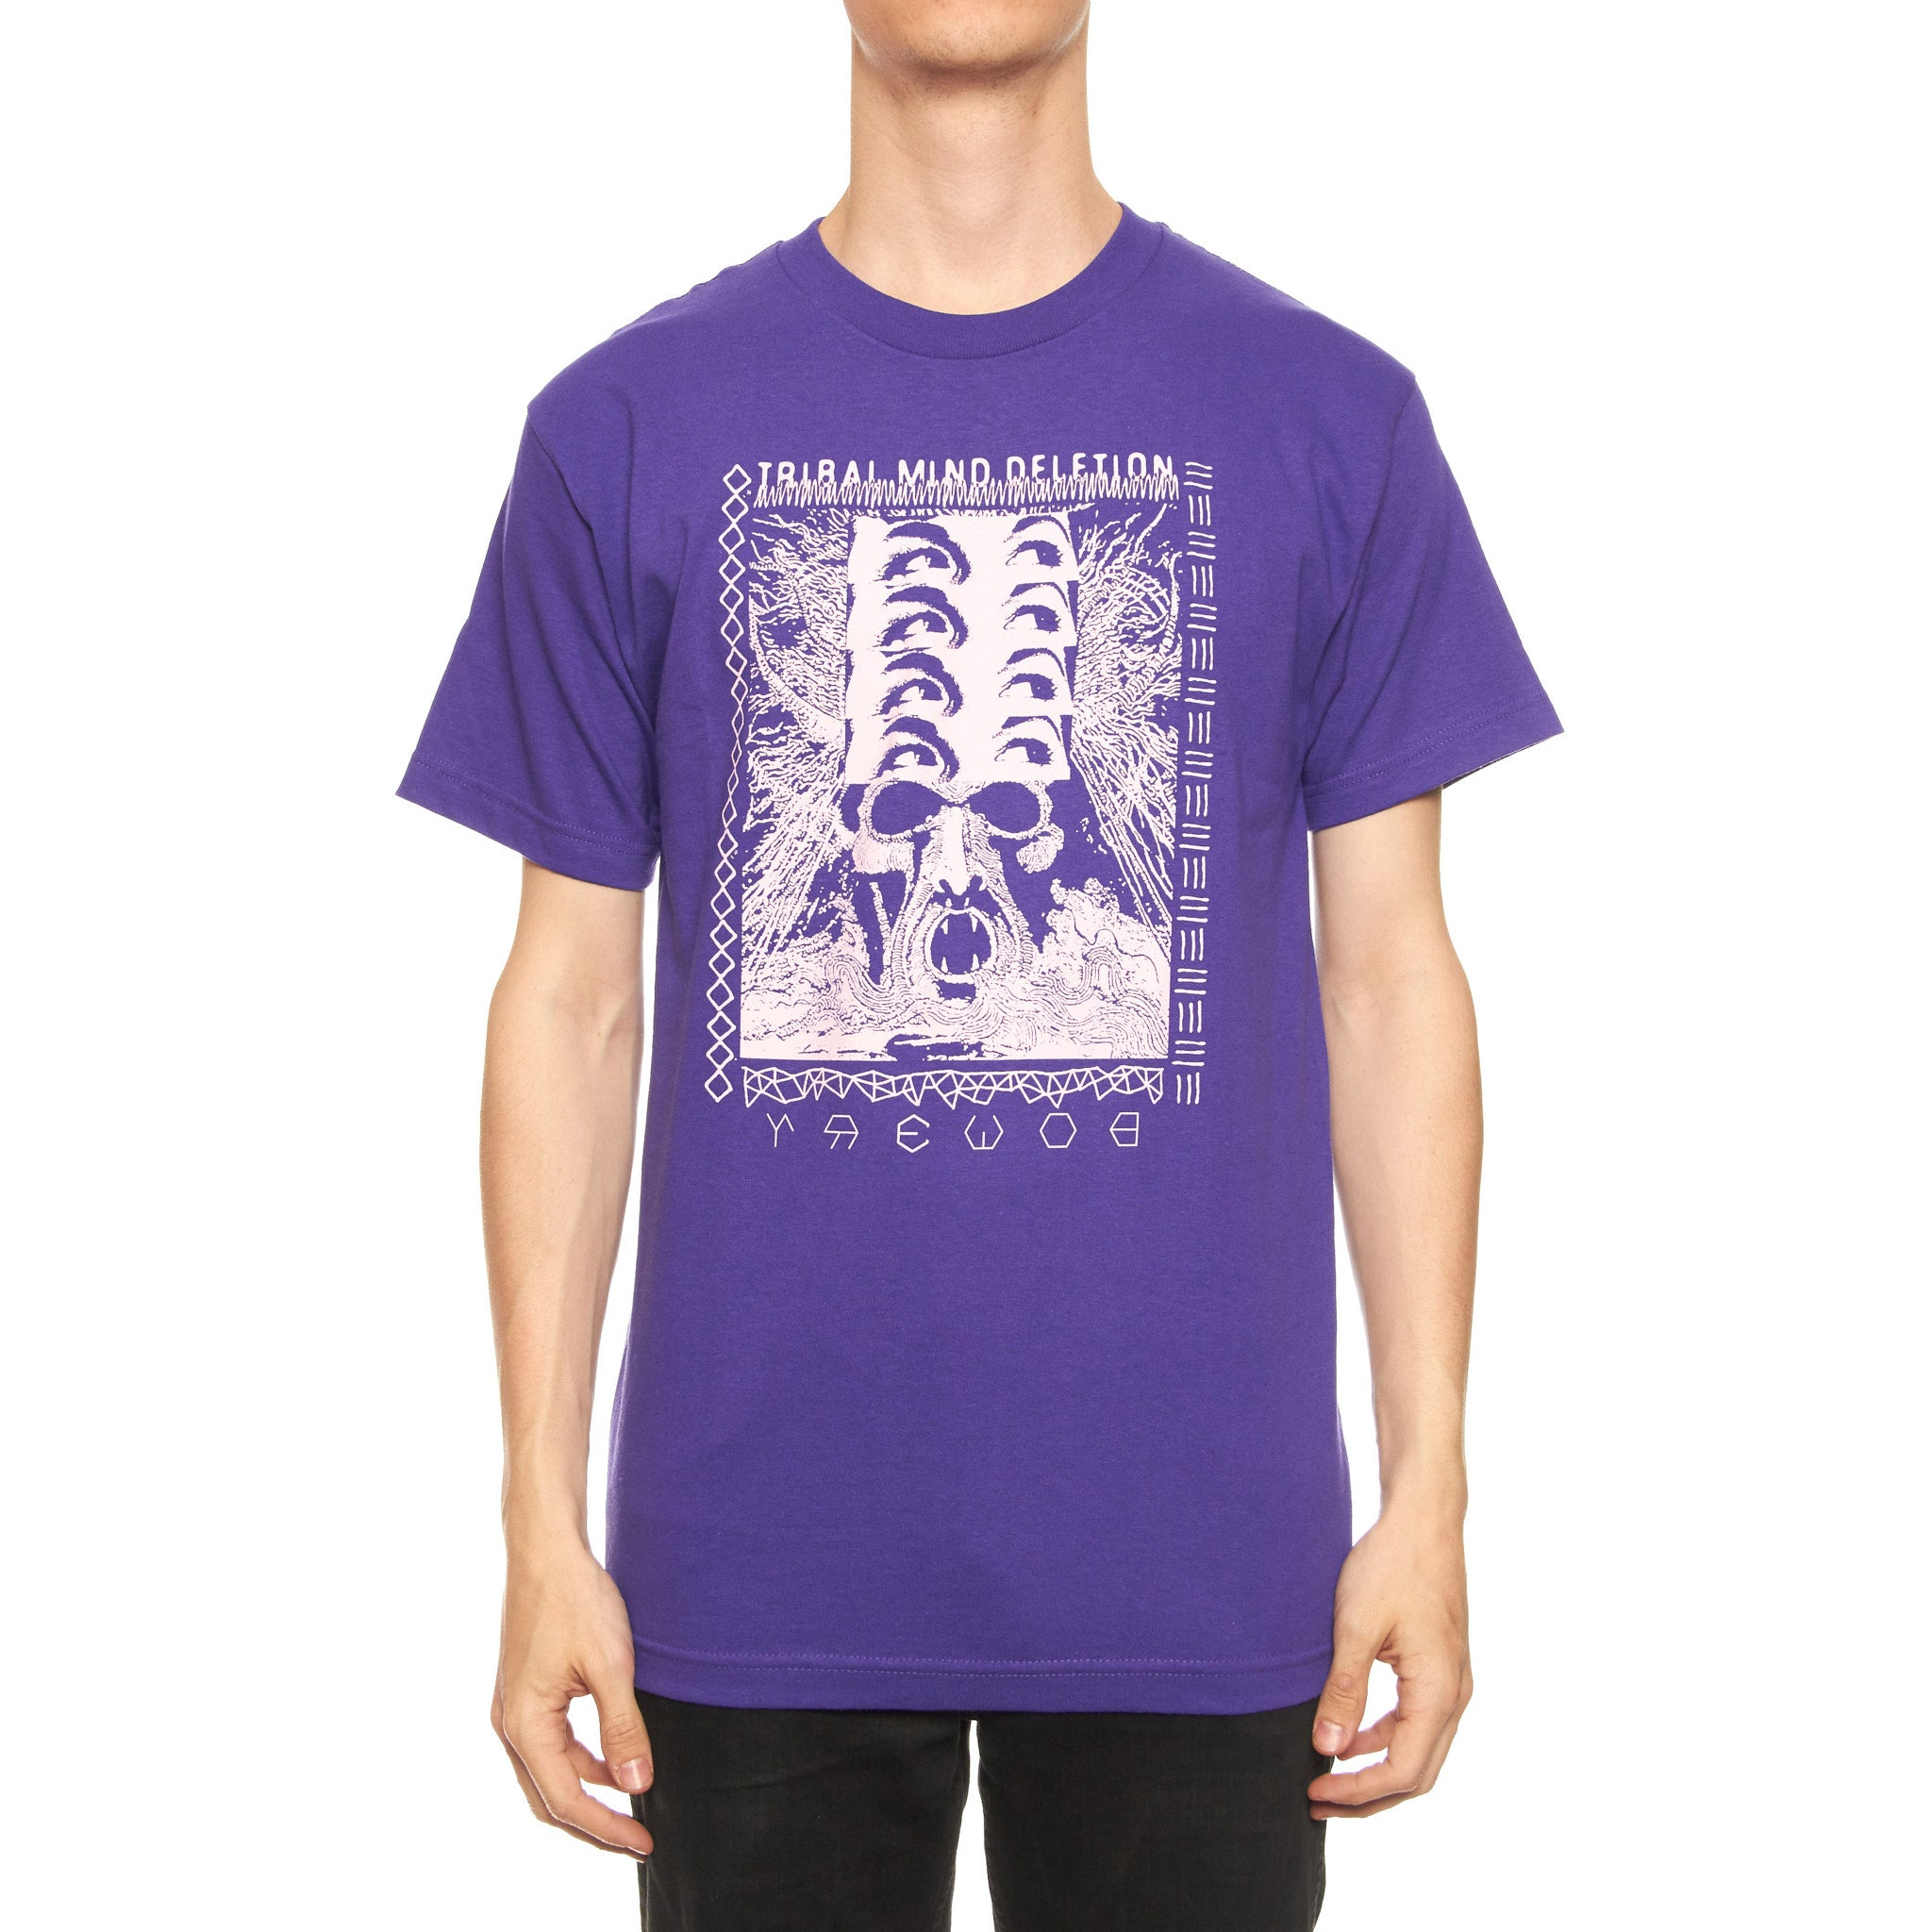 Tribal Mind Tshirt